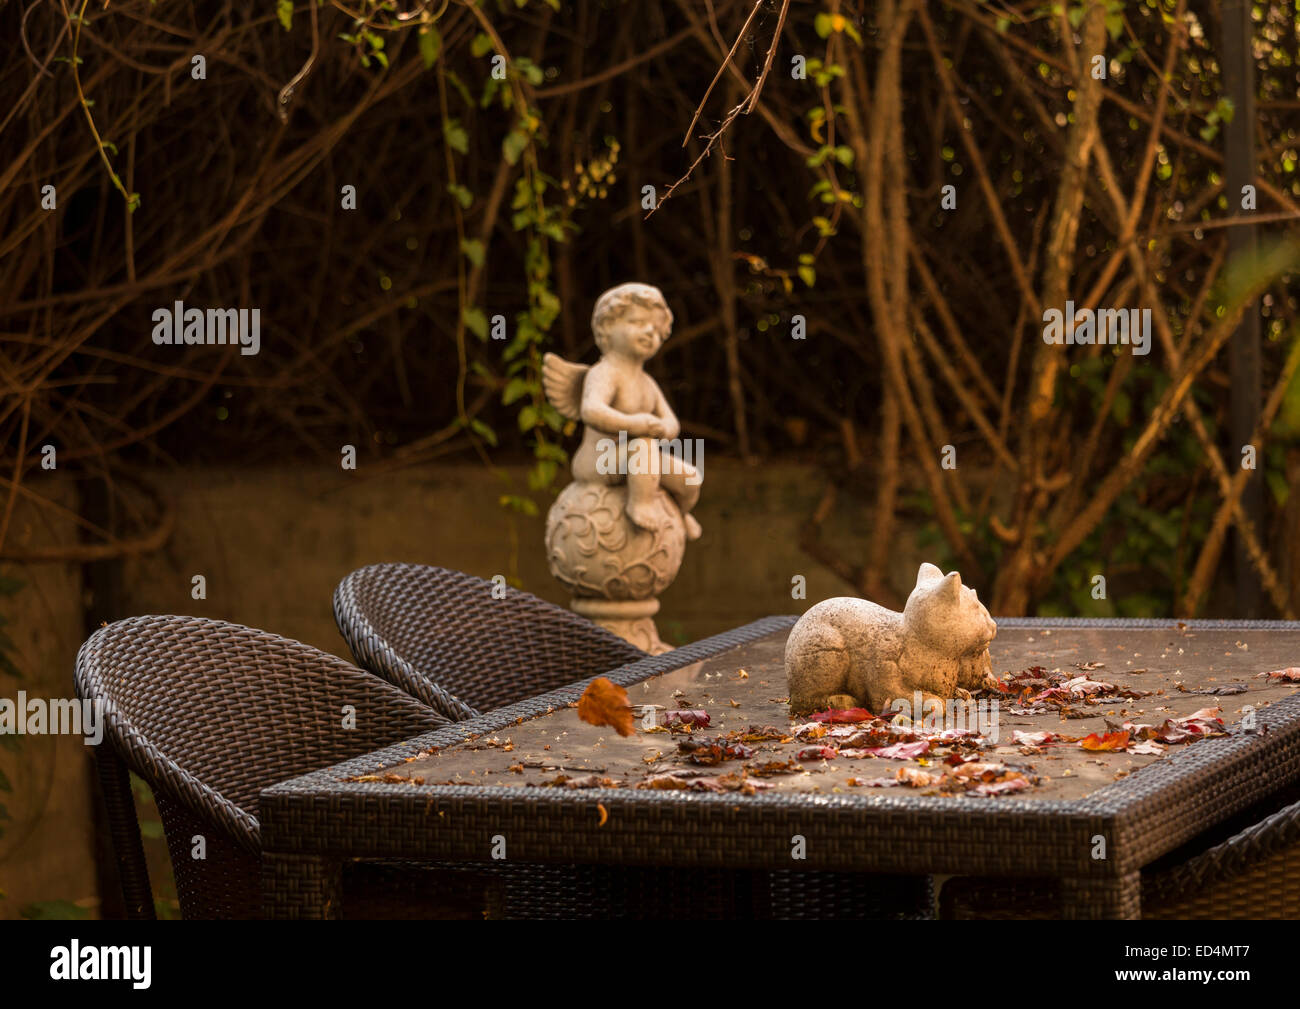 Warm colors of rustic autumn garden table with falling leaves and statue of cat and angel in background Stock Photo